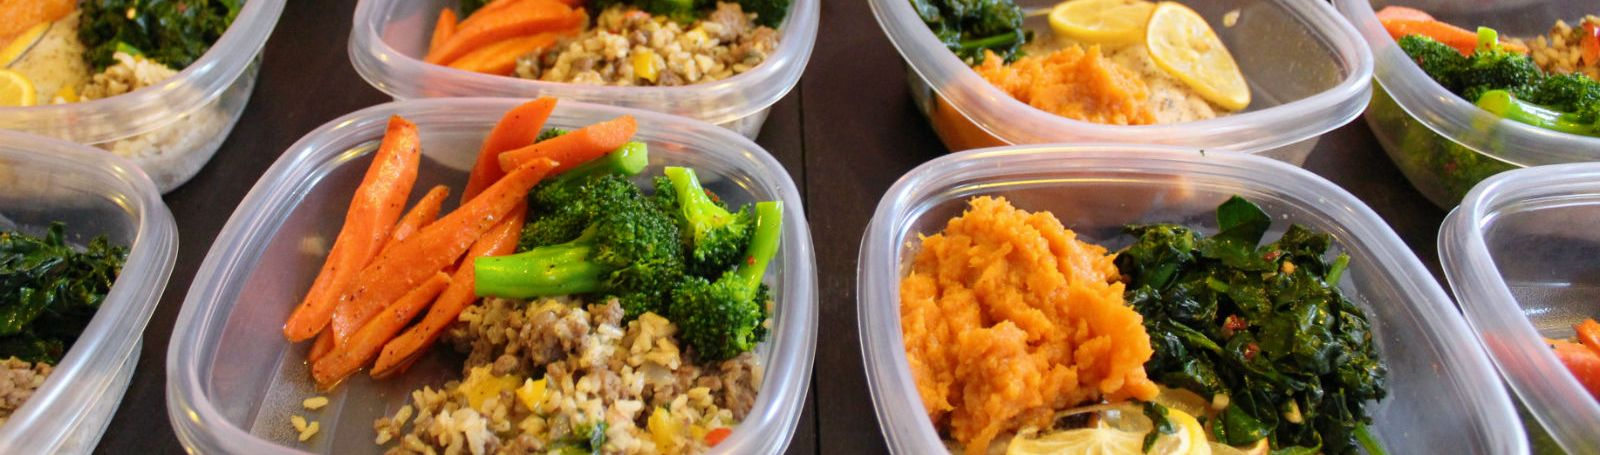 Meal Prep: An Overview